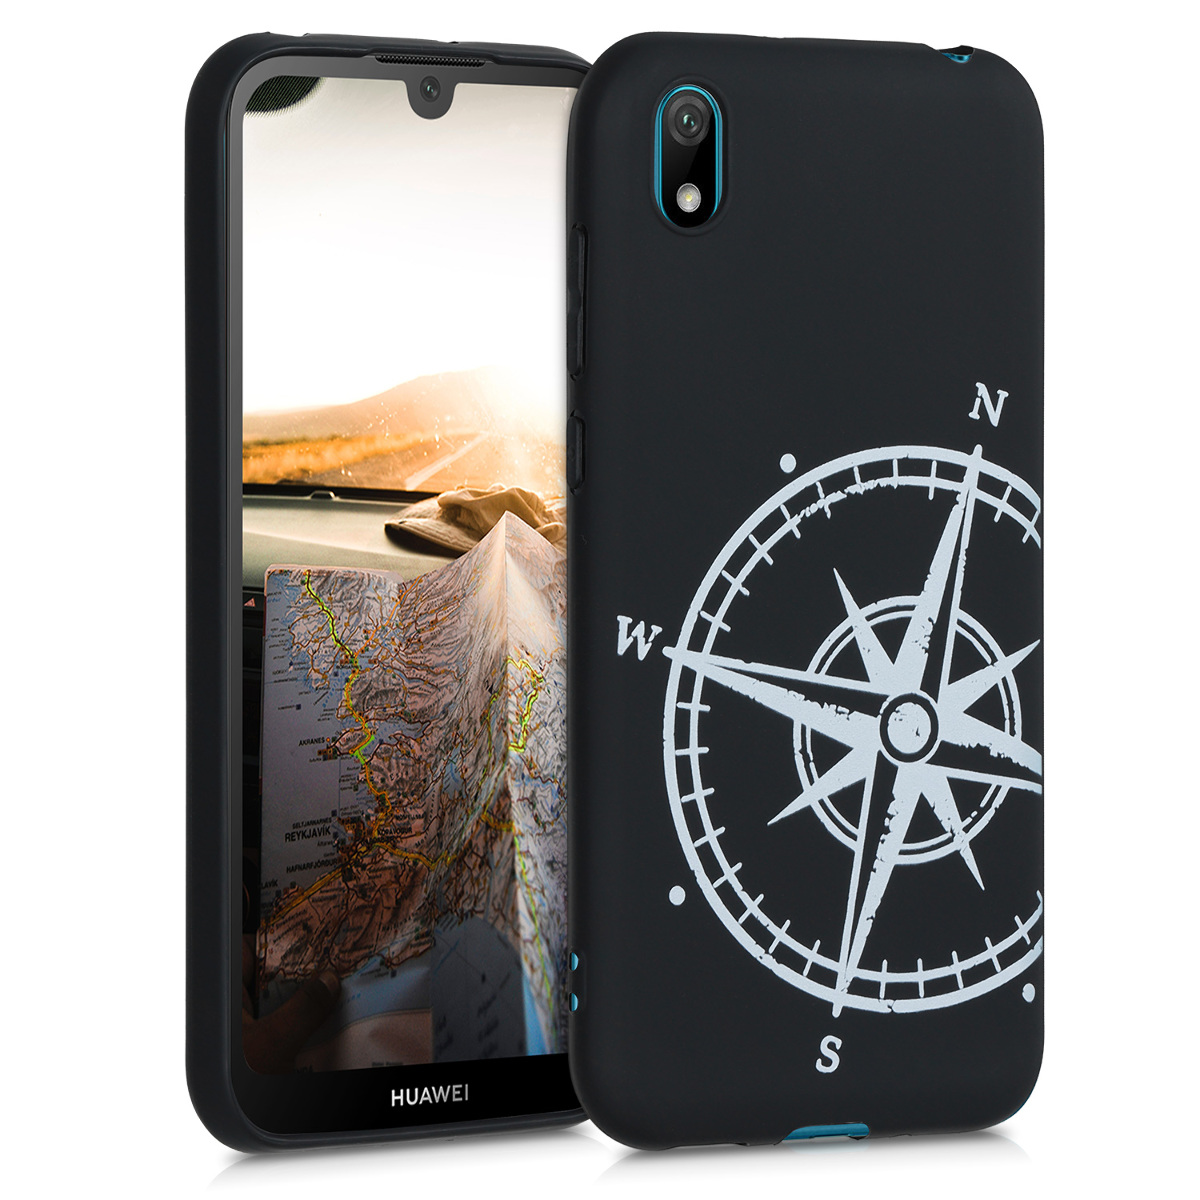 KW Θήκη Σιλικόνης Huawei Y5 2019 - Navigational Compass - White / Black (51080.02)